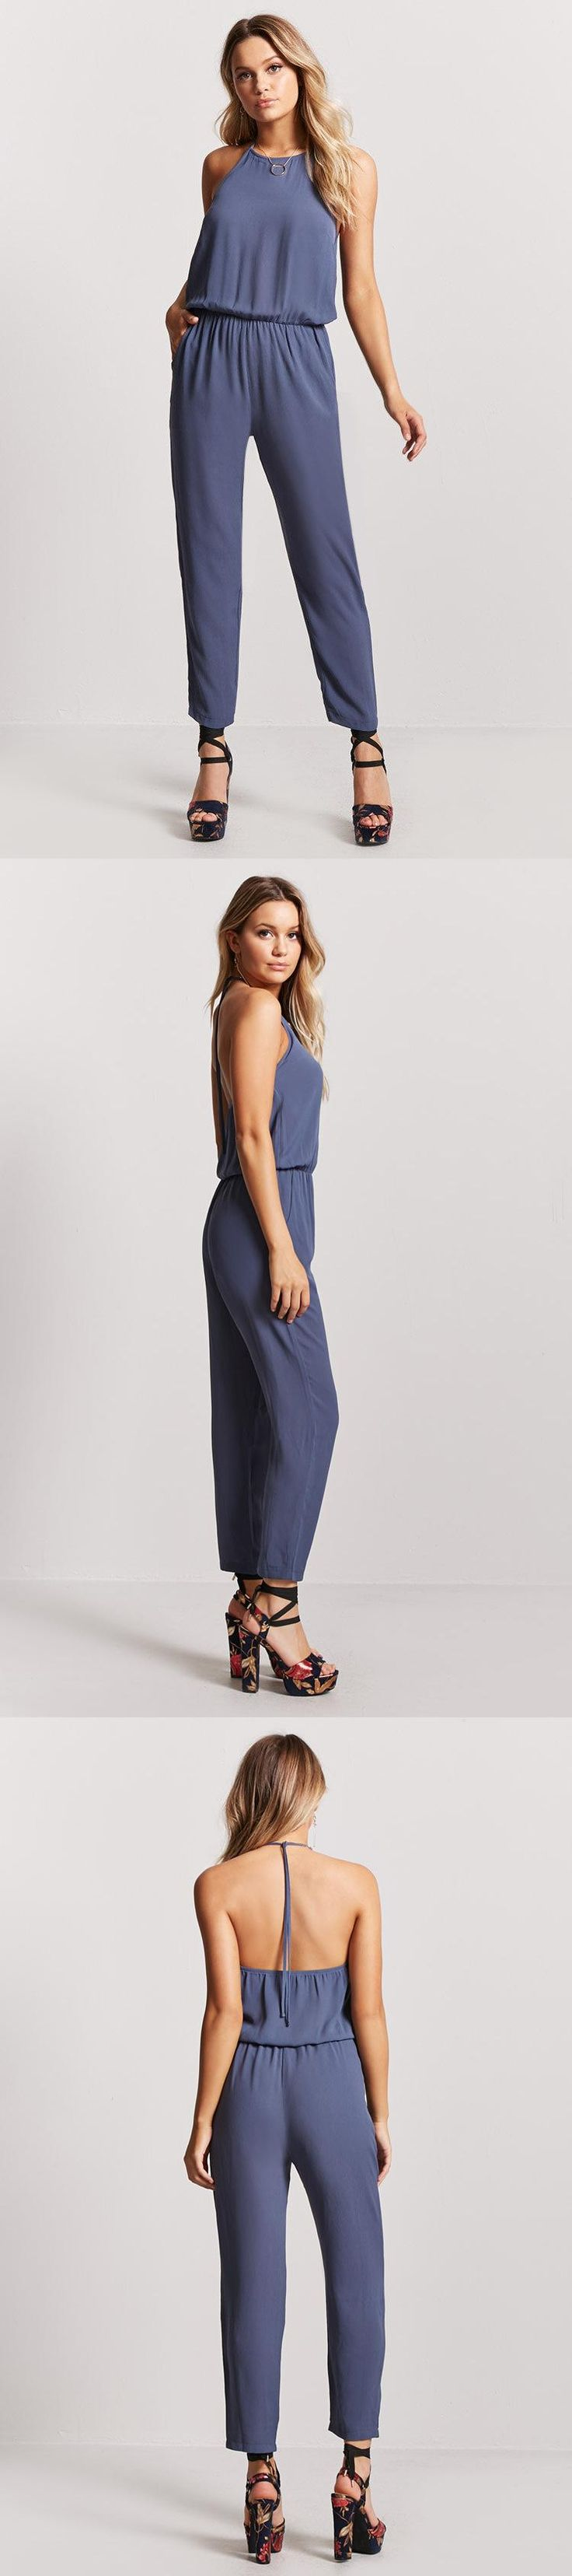 Crepe Woven Halter Jumpsuit // 17.90 USD // Forever 21